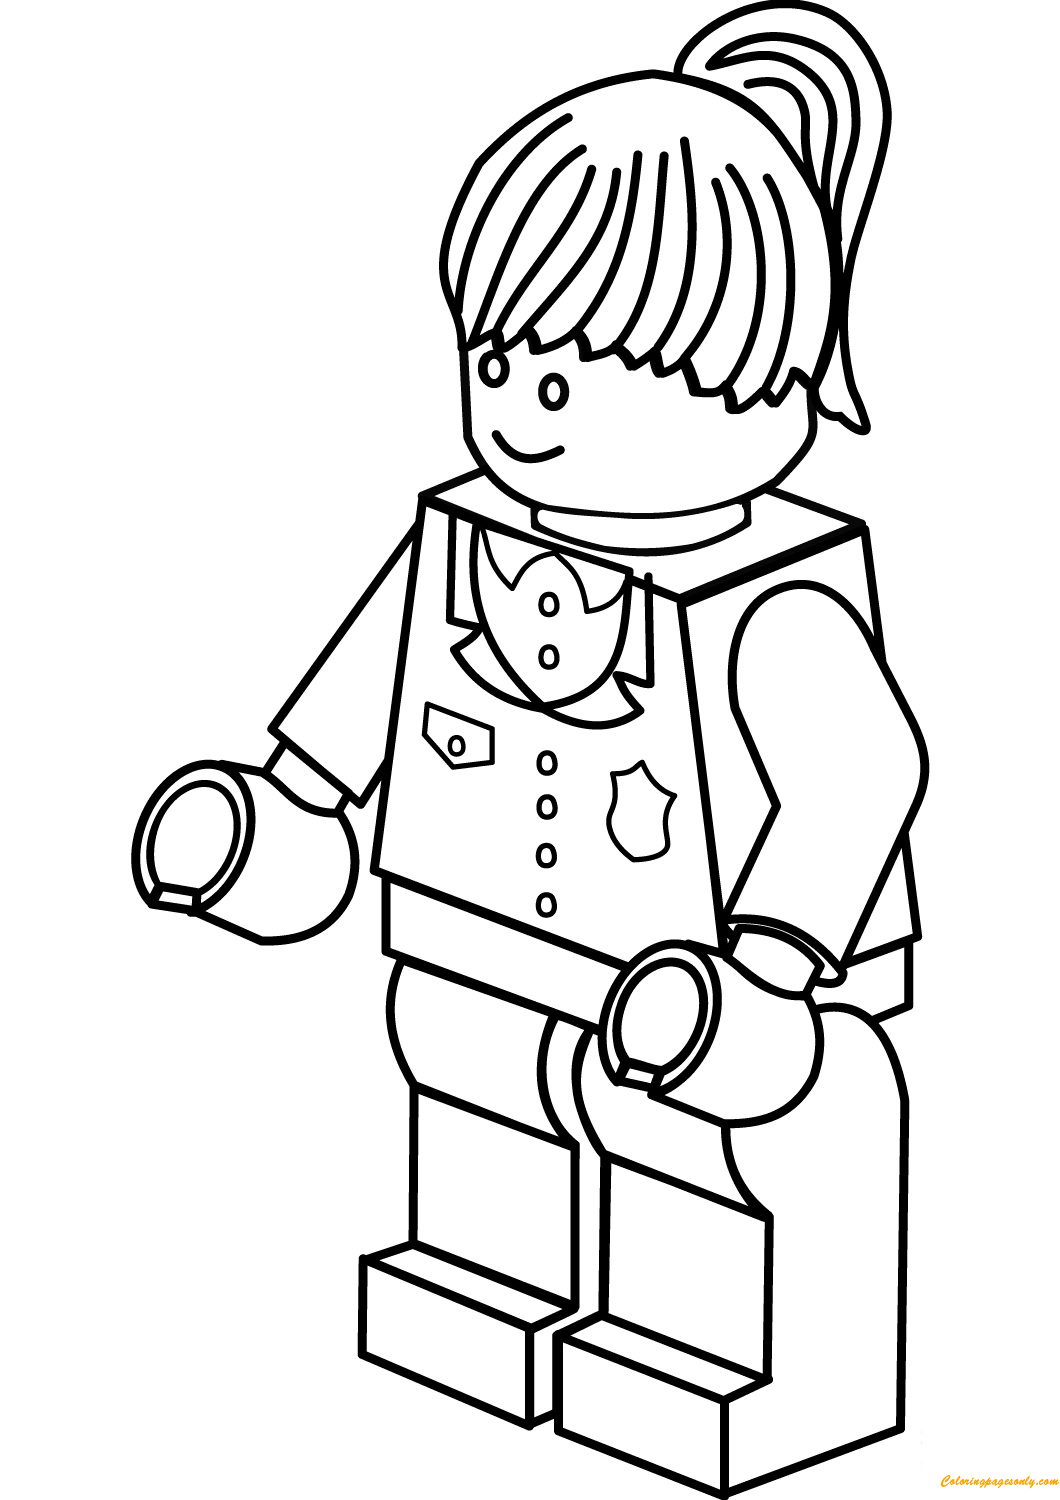 Police Coloring Pages - GetColoringPages.com | 1500x1060